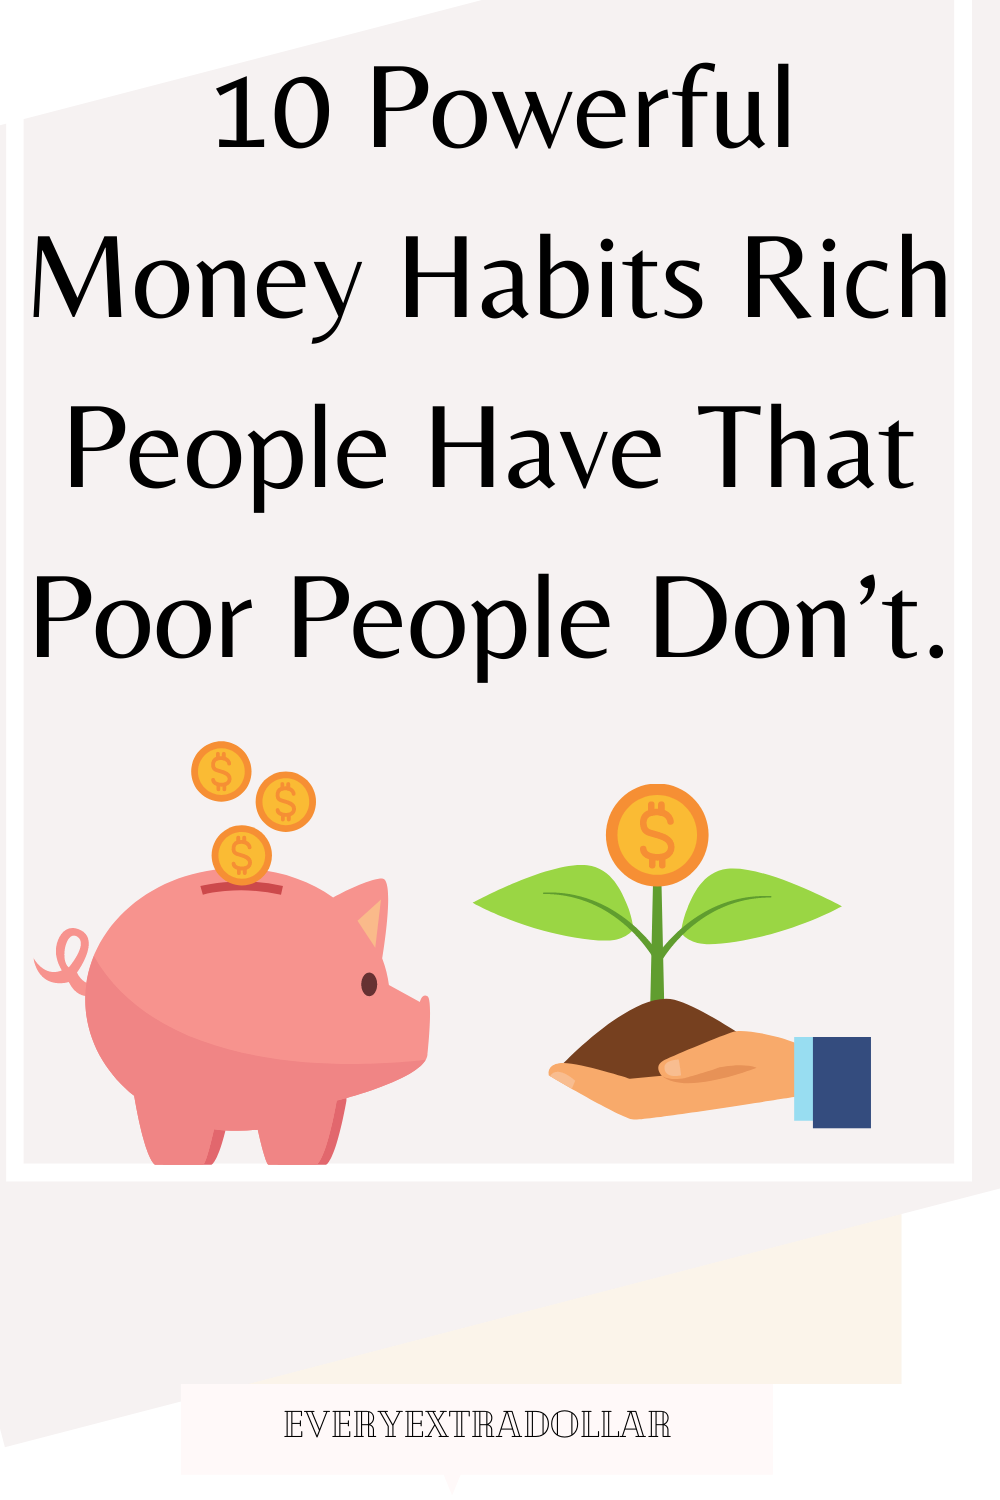 10 Powerful Money Habits Rich People Have That Poor People